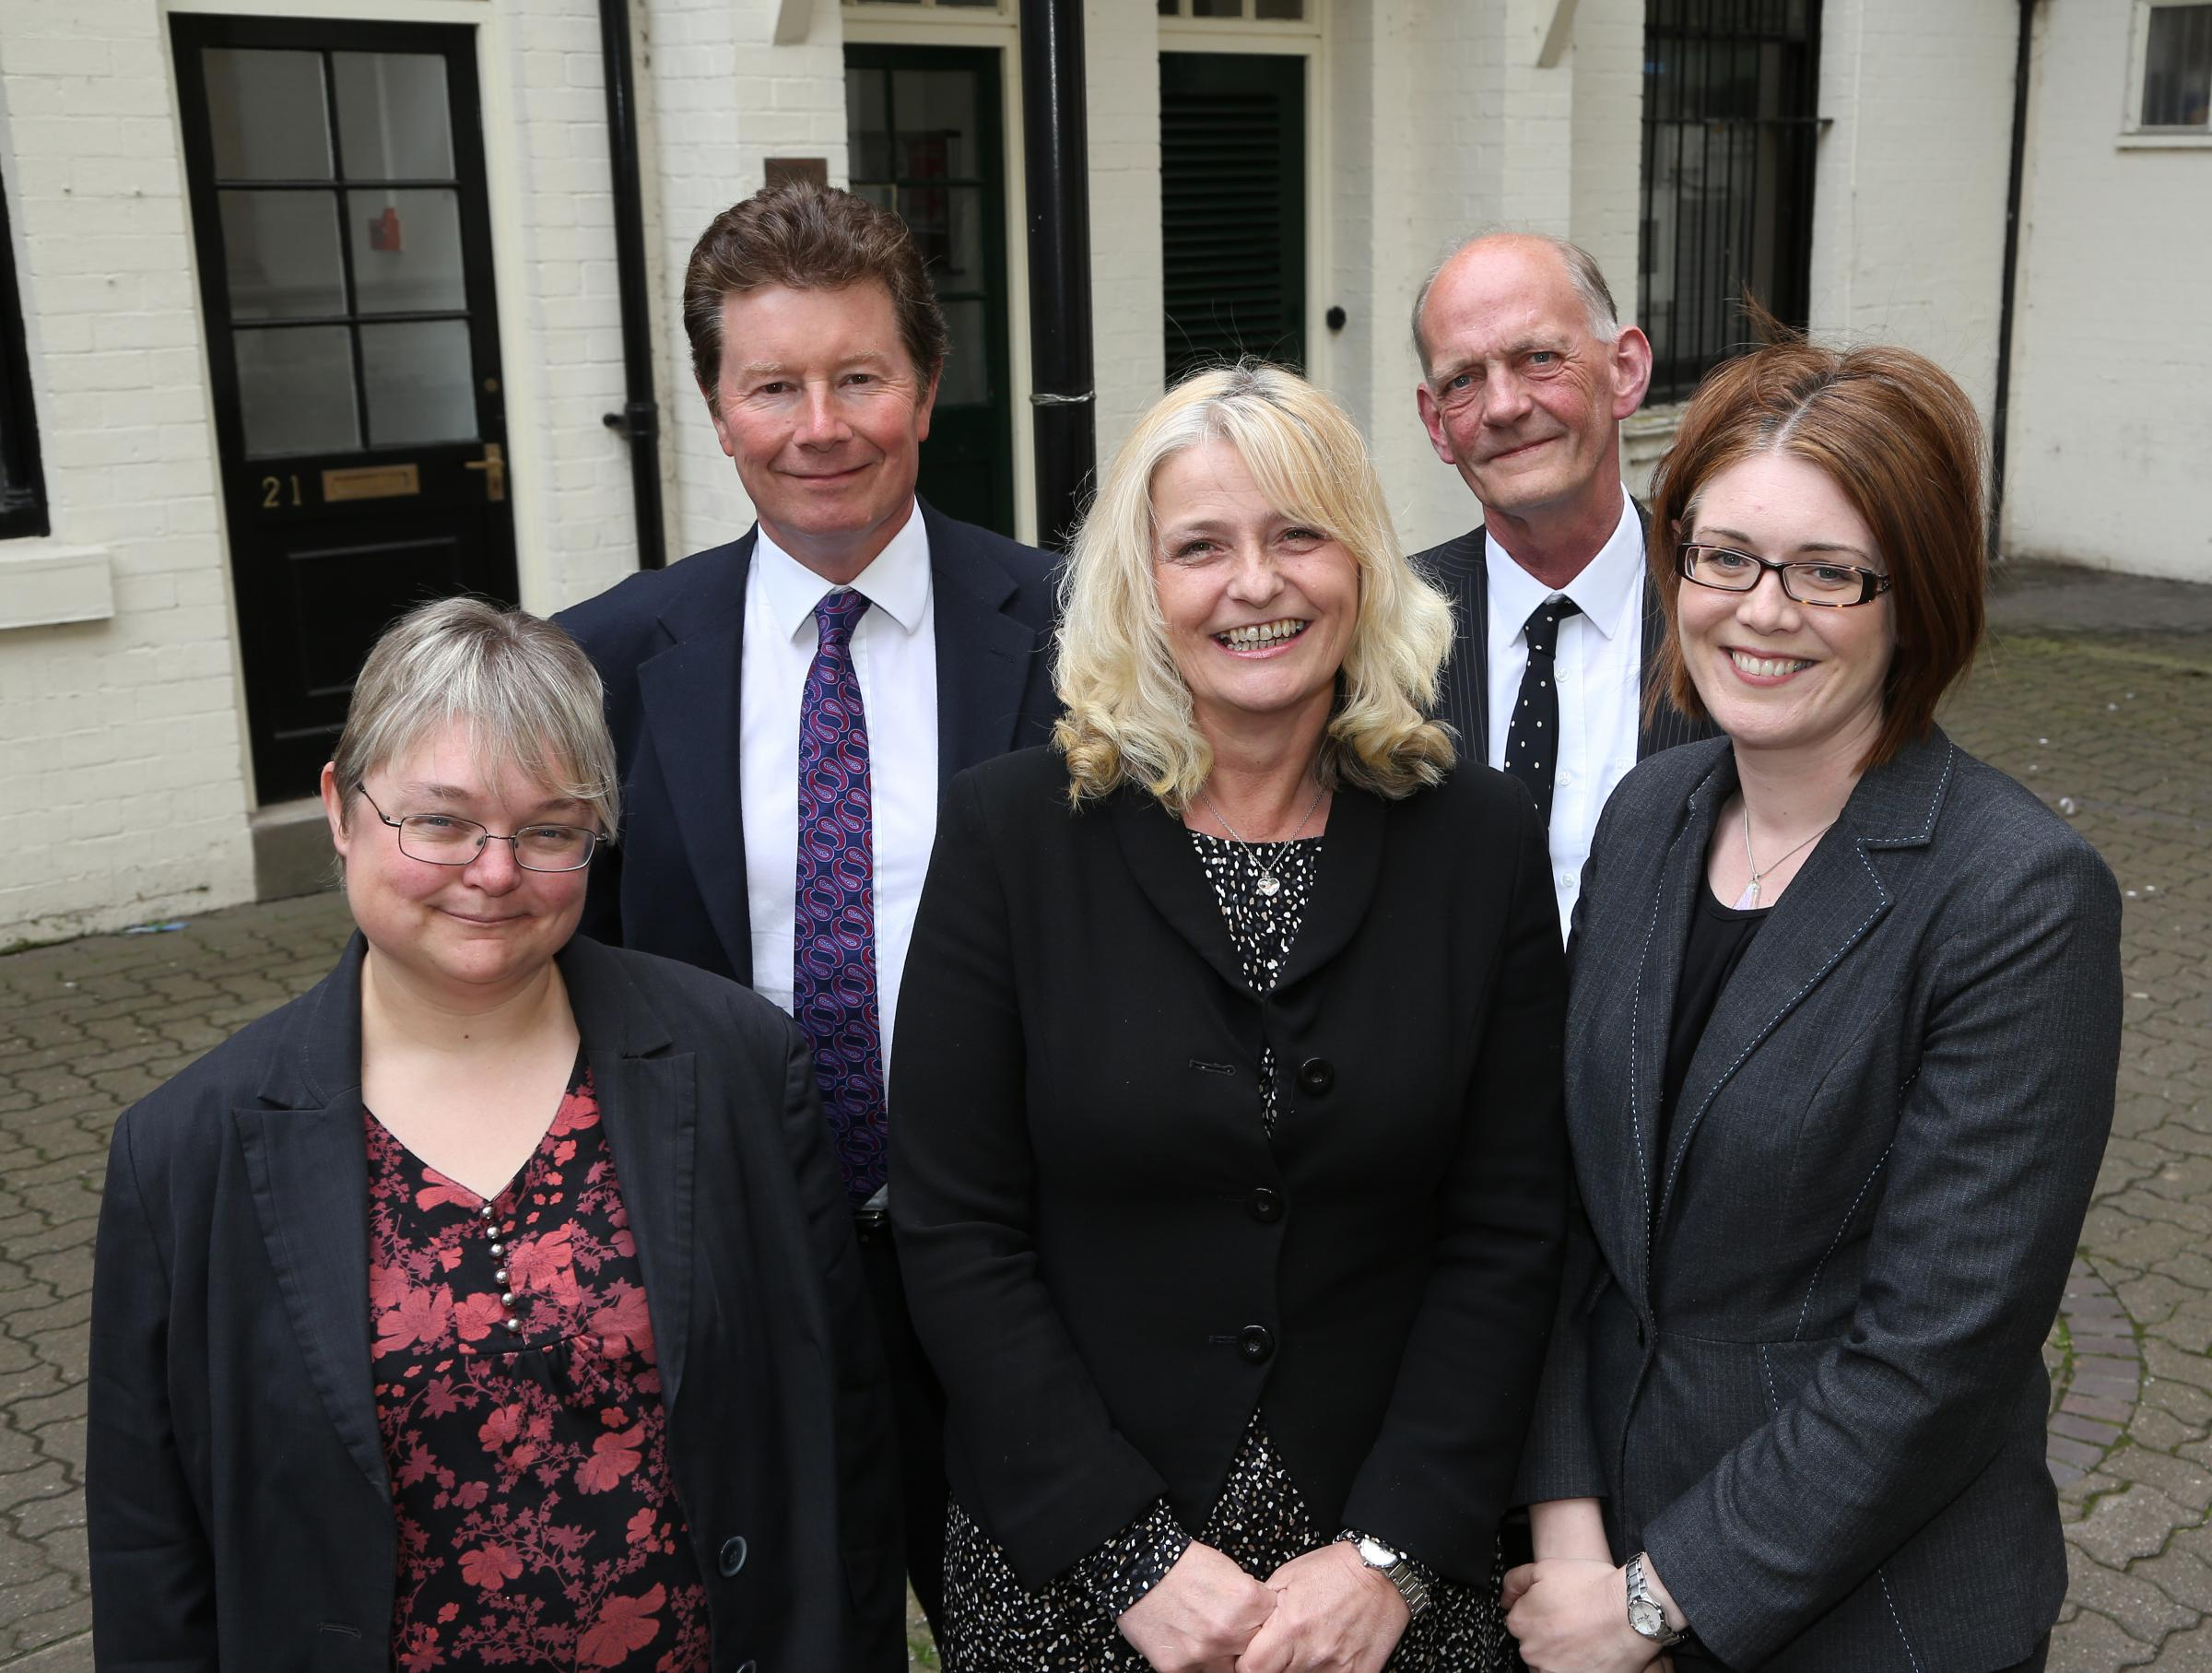 Left to right: Karen Billington, Cyril Arridge, Suzanne Oldnall, Richard Green and Emma Roberts.